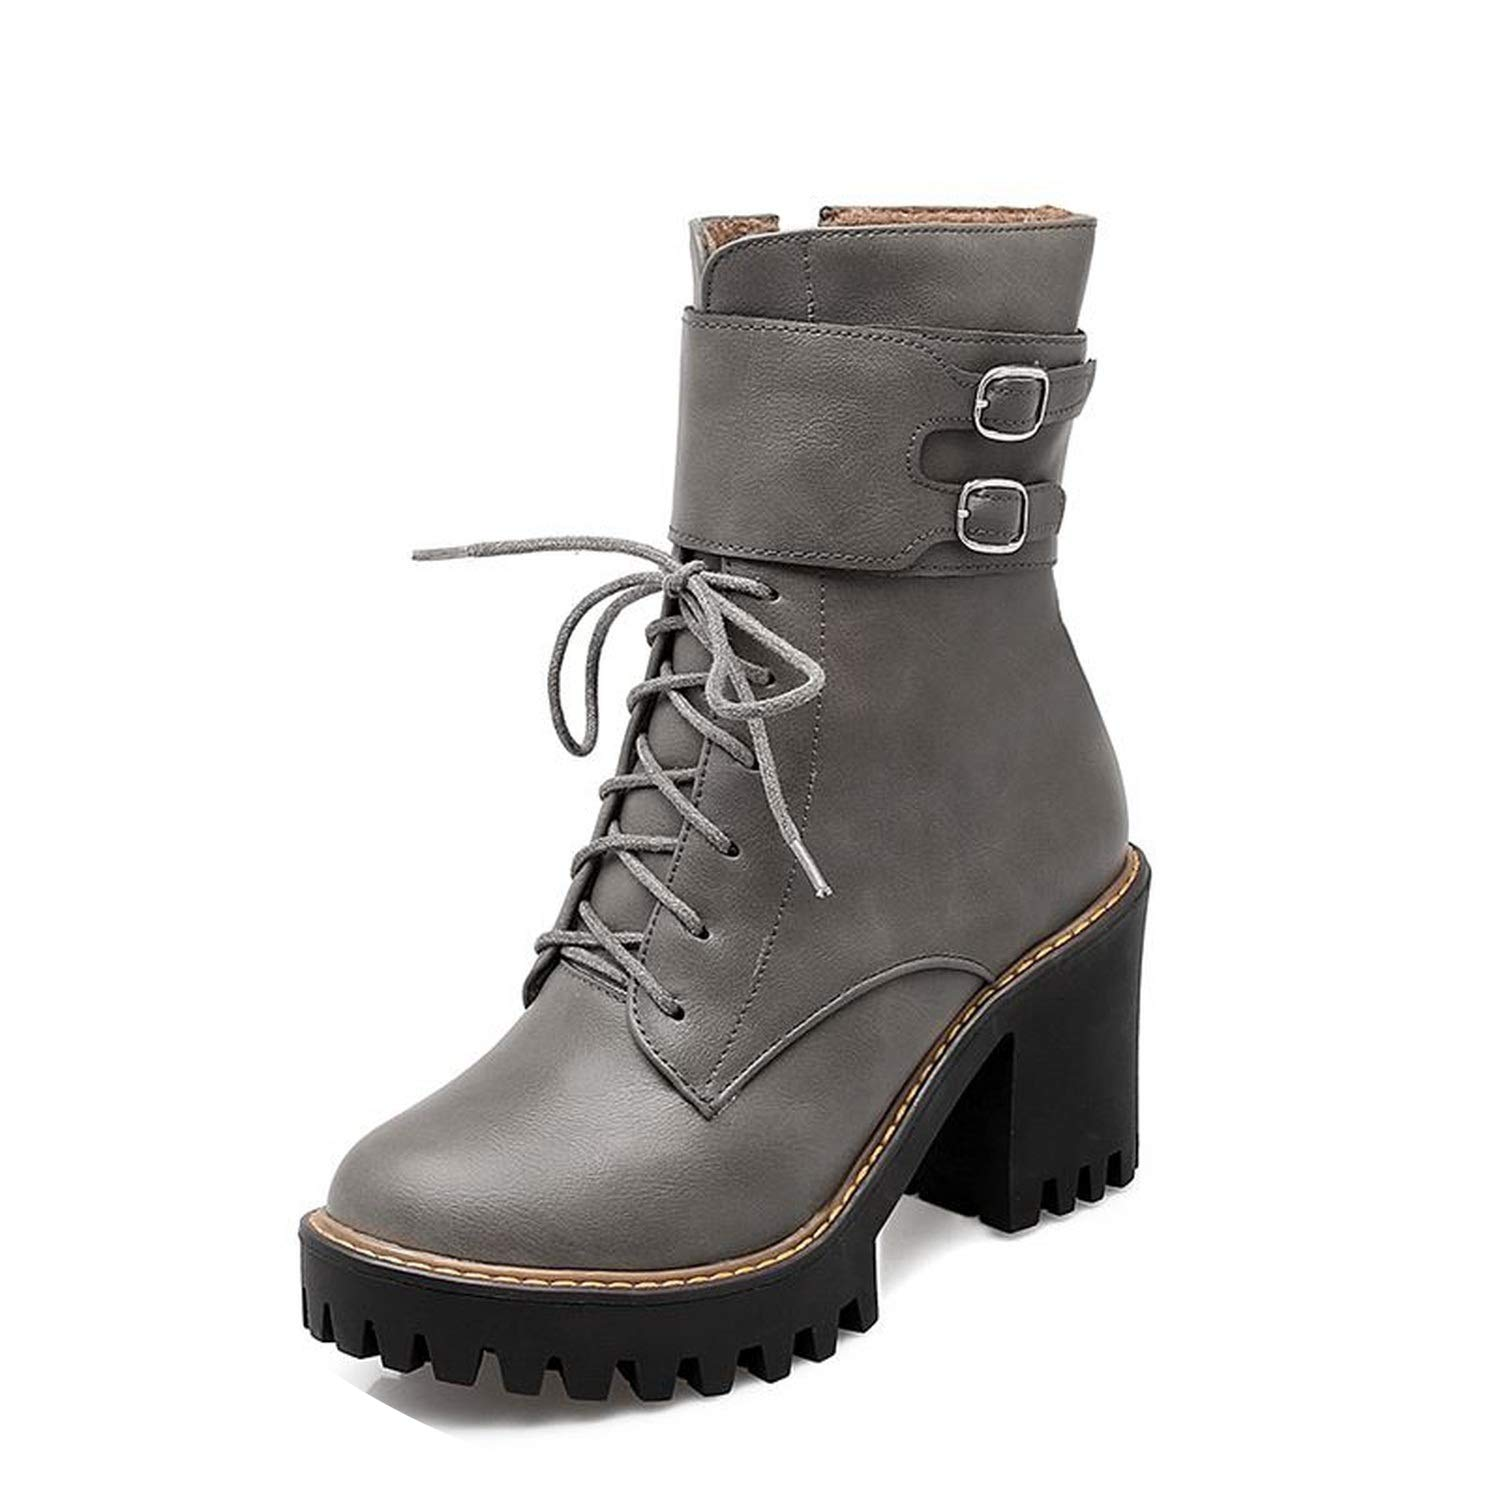 Fashion Boots Women 2018 Autumn Winter Buckle Ladies Shoes lace up Ankle Boots for Women